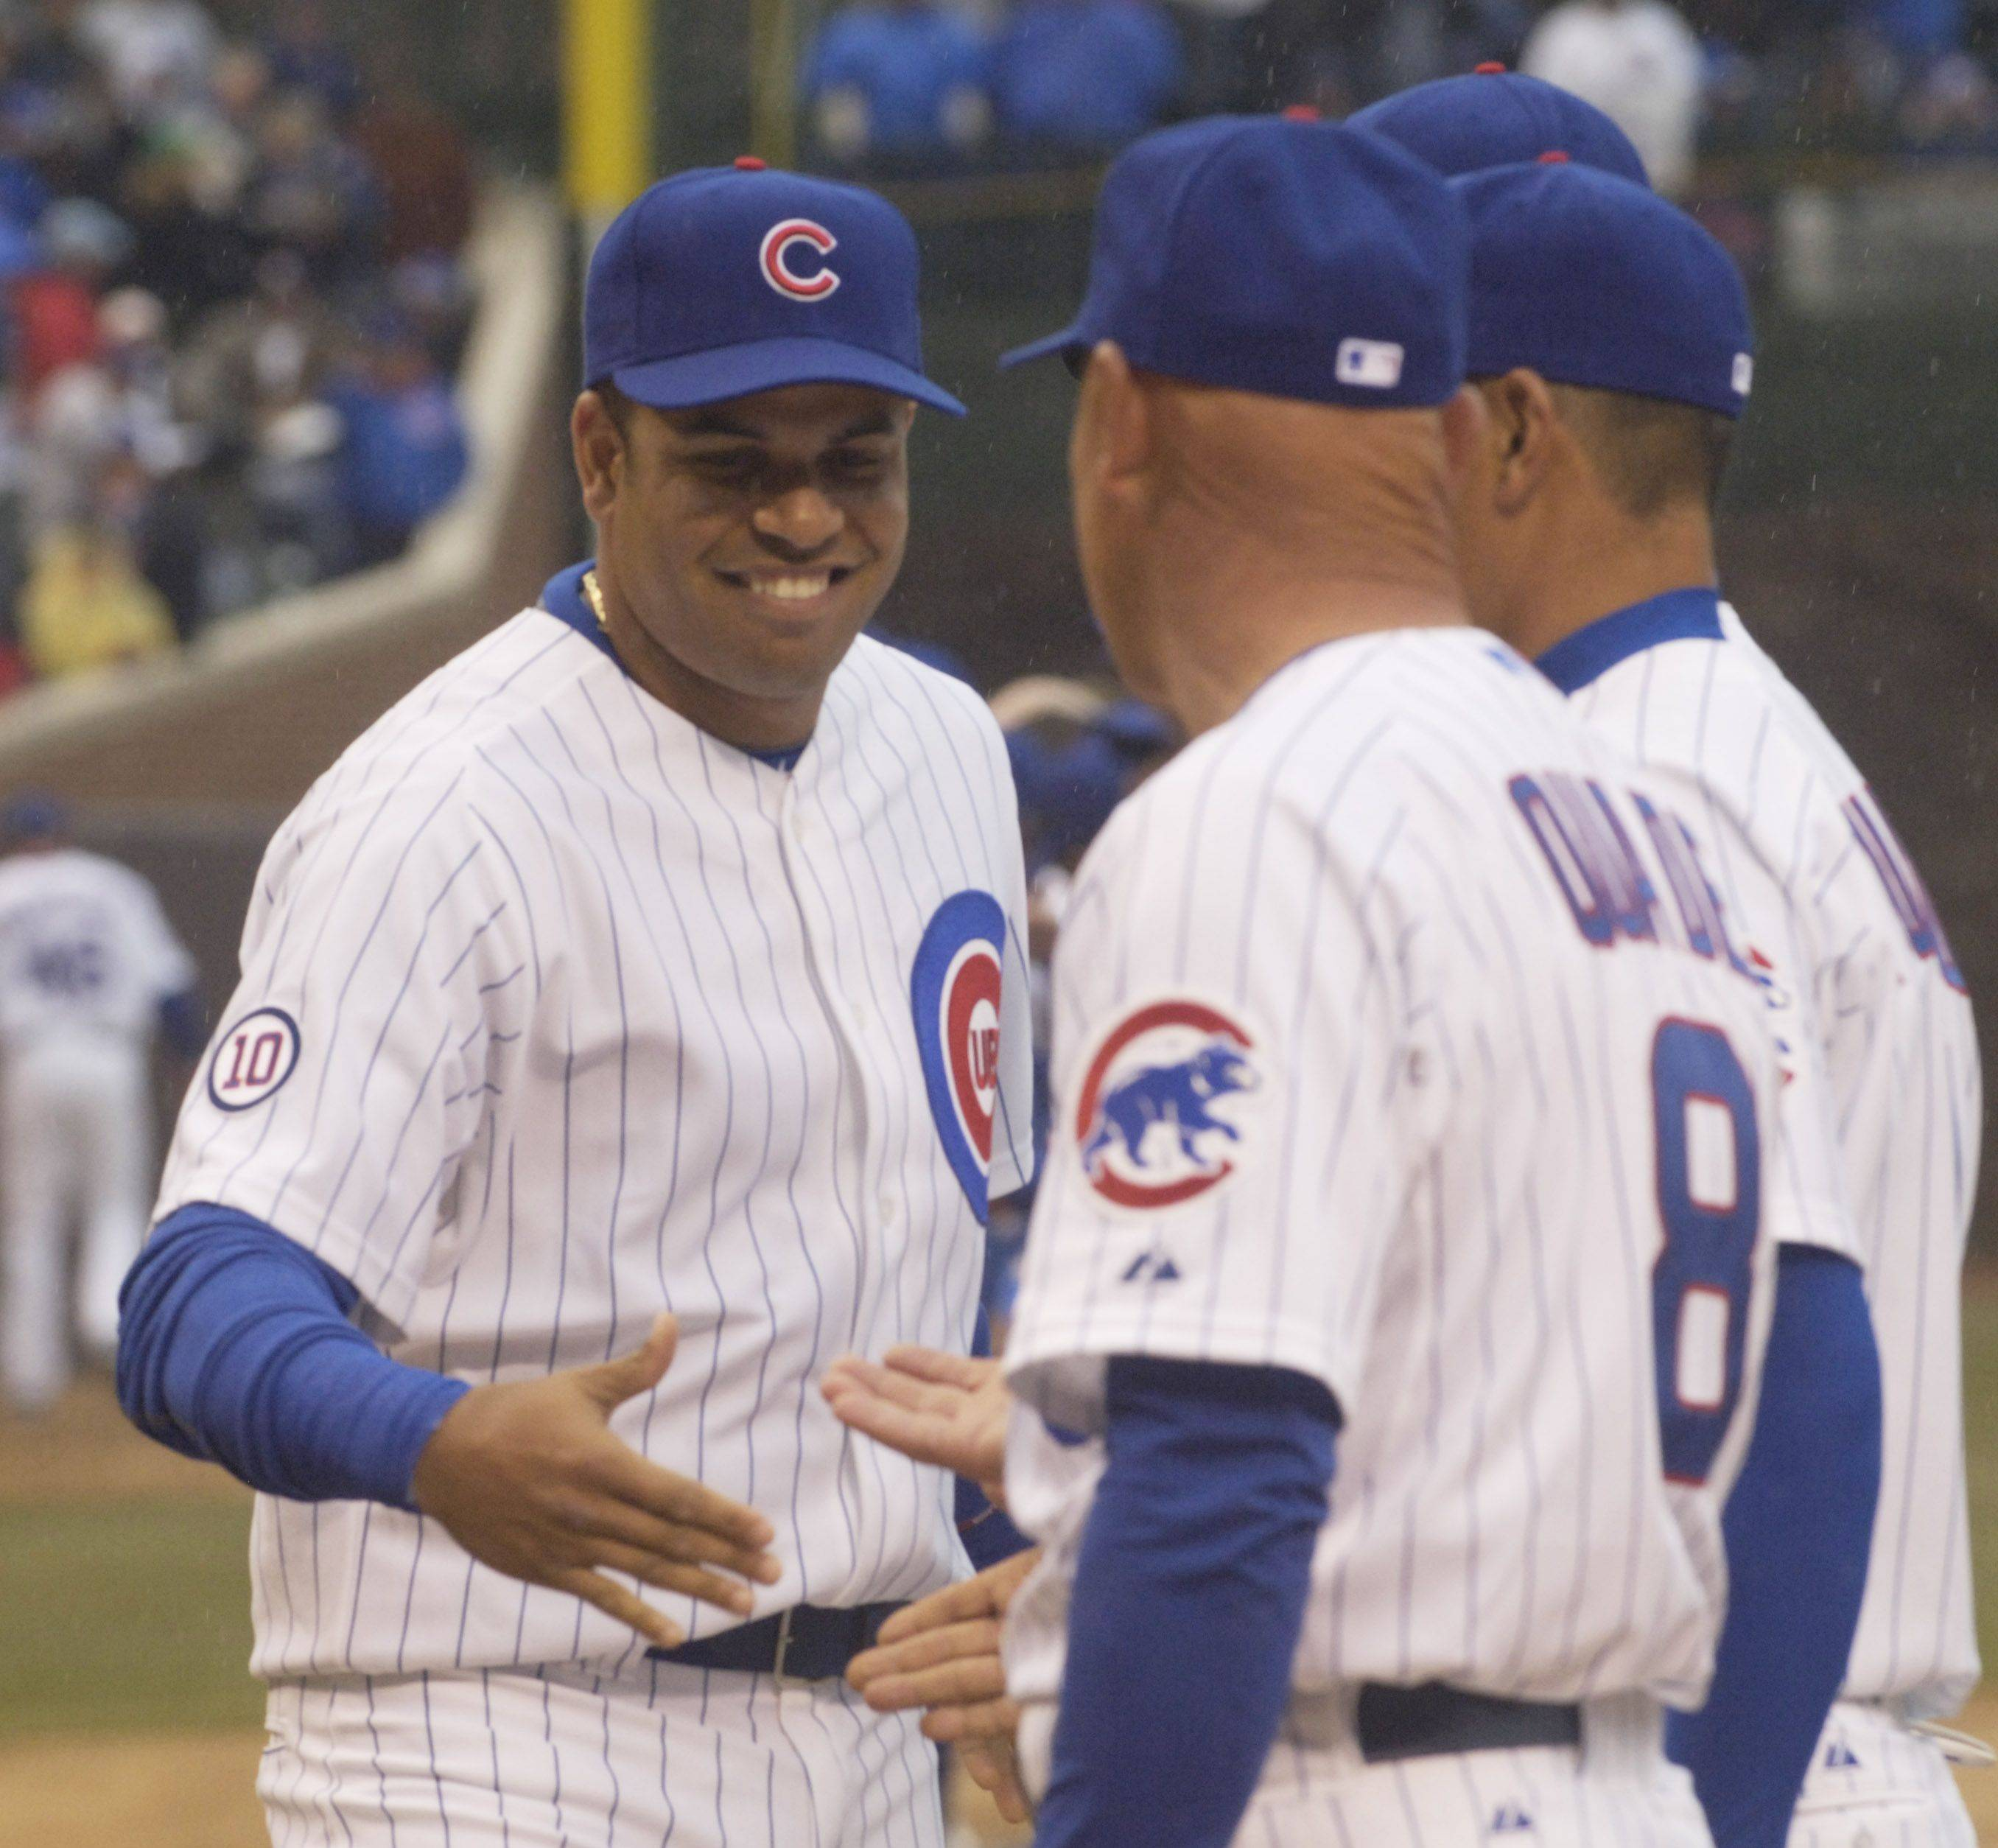 Cubs third baseman Aramis Ramirez is greeted by Manager Mike Quade.